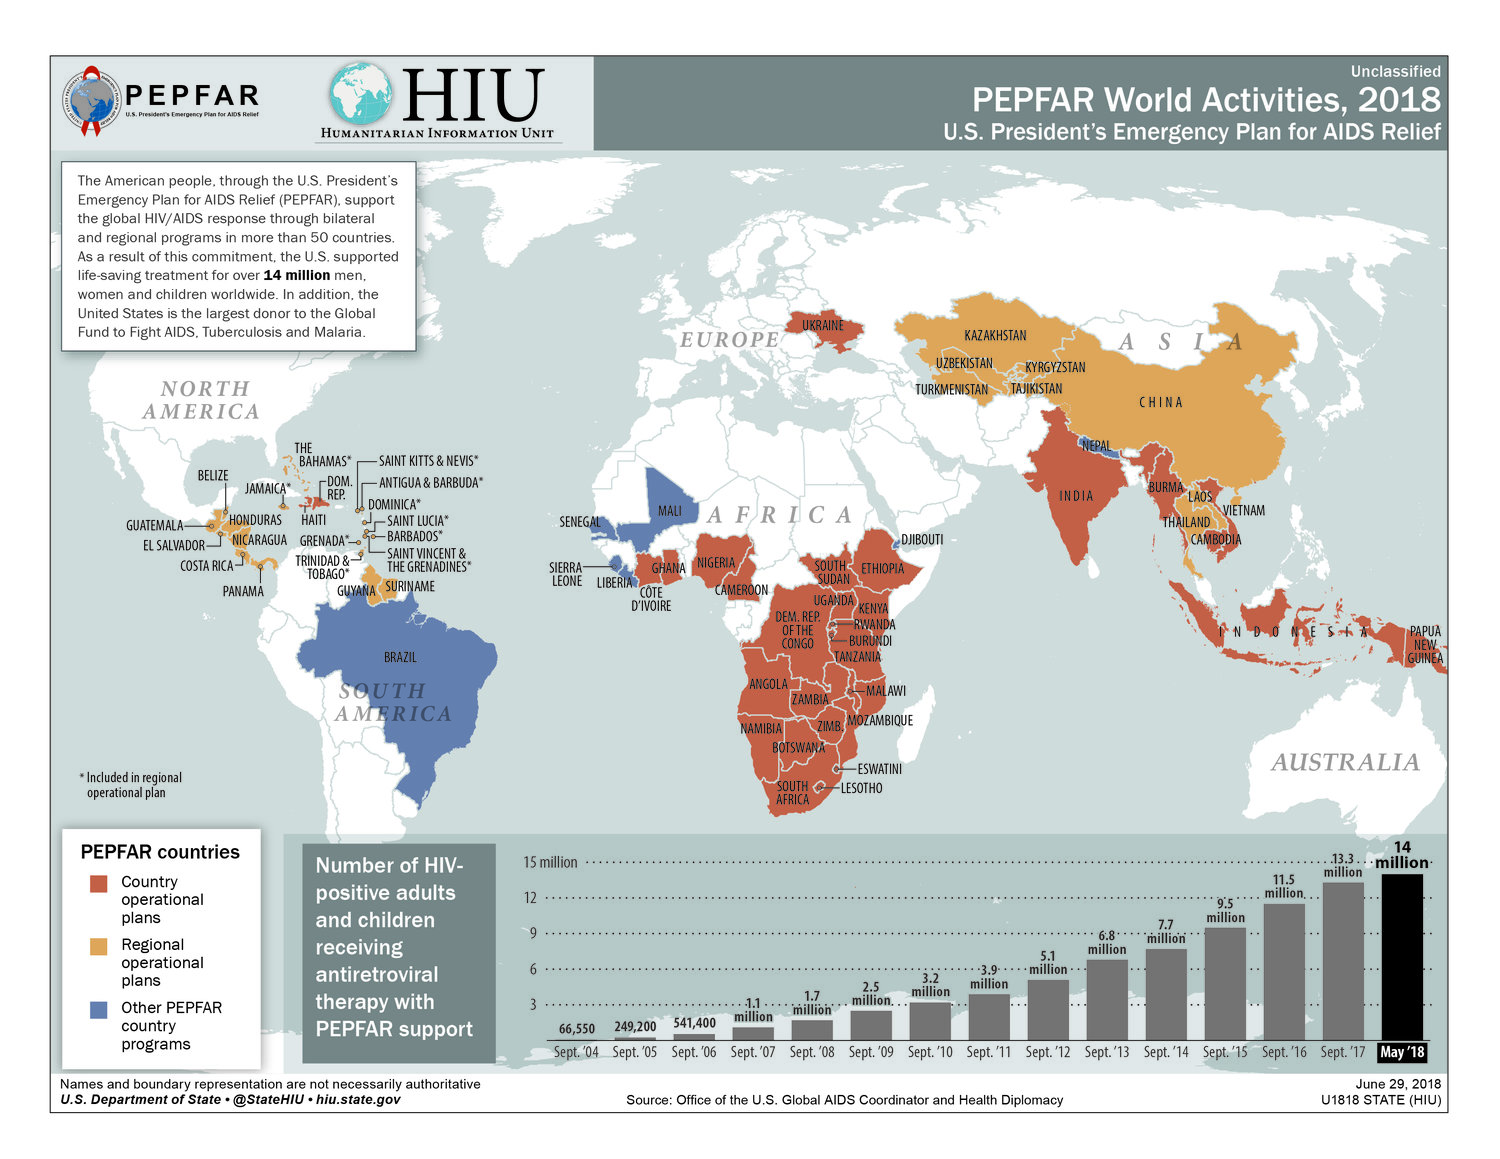 23 JULY 2018: PEPFAR WORLD ACTIVITIES, 2018 - U.S. PRESIDENT'S EMERGENCY PLAN FOR AIDS RELIEF, JUNE 2018